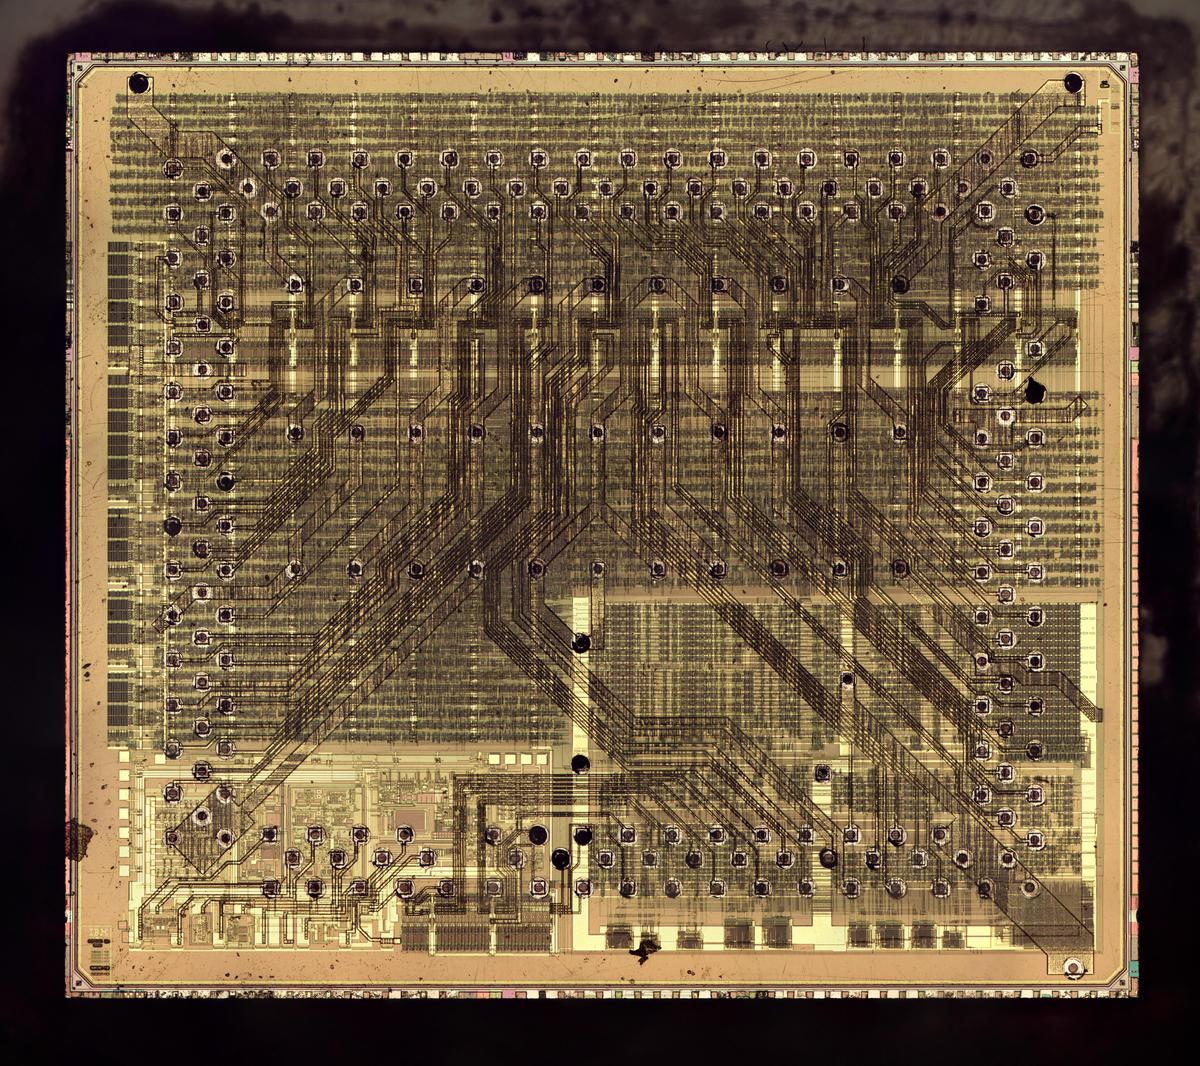 Die photo of the chip. Click this (or any other) image for a larger version.